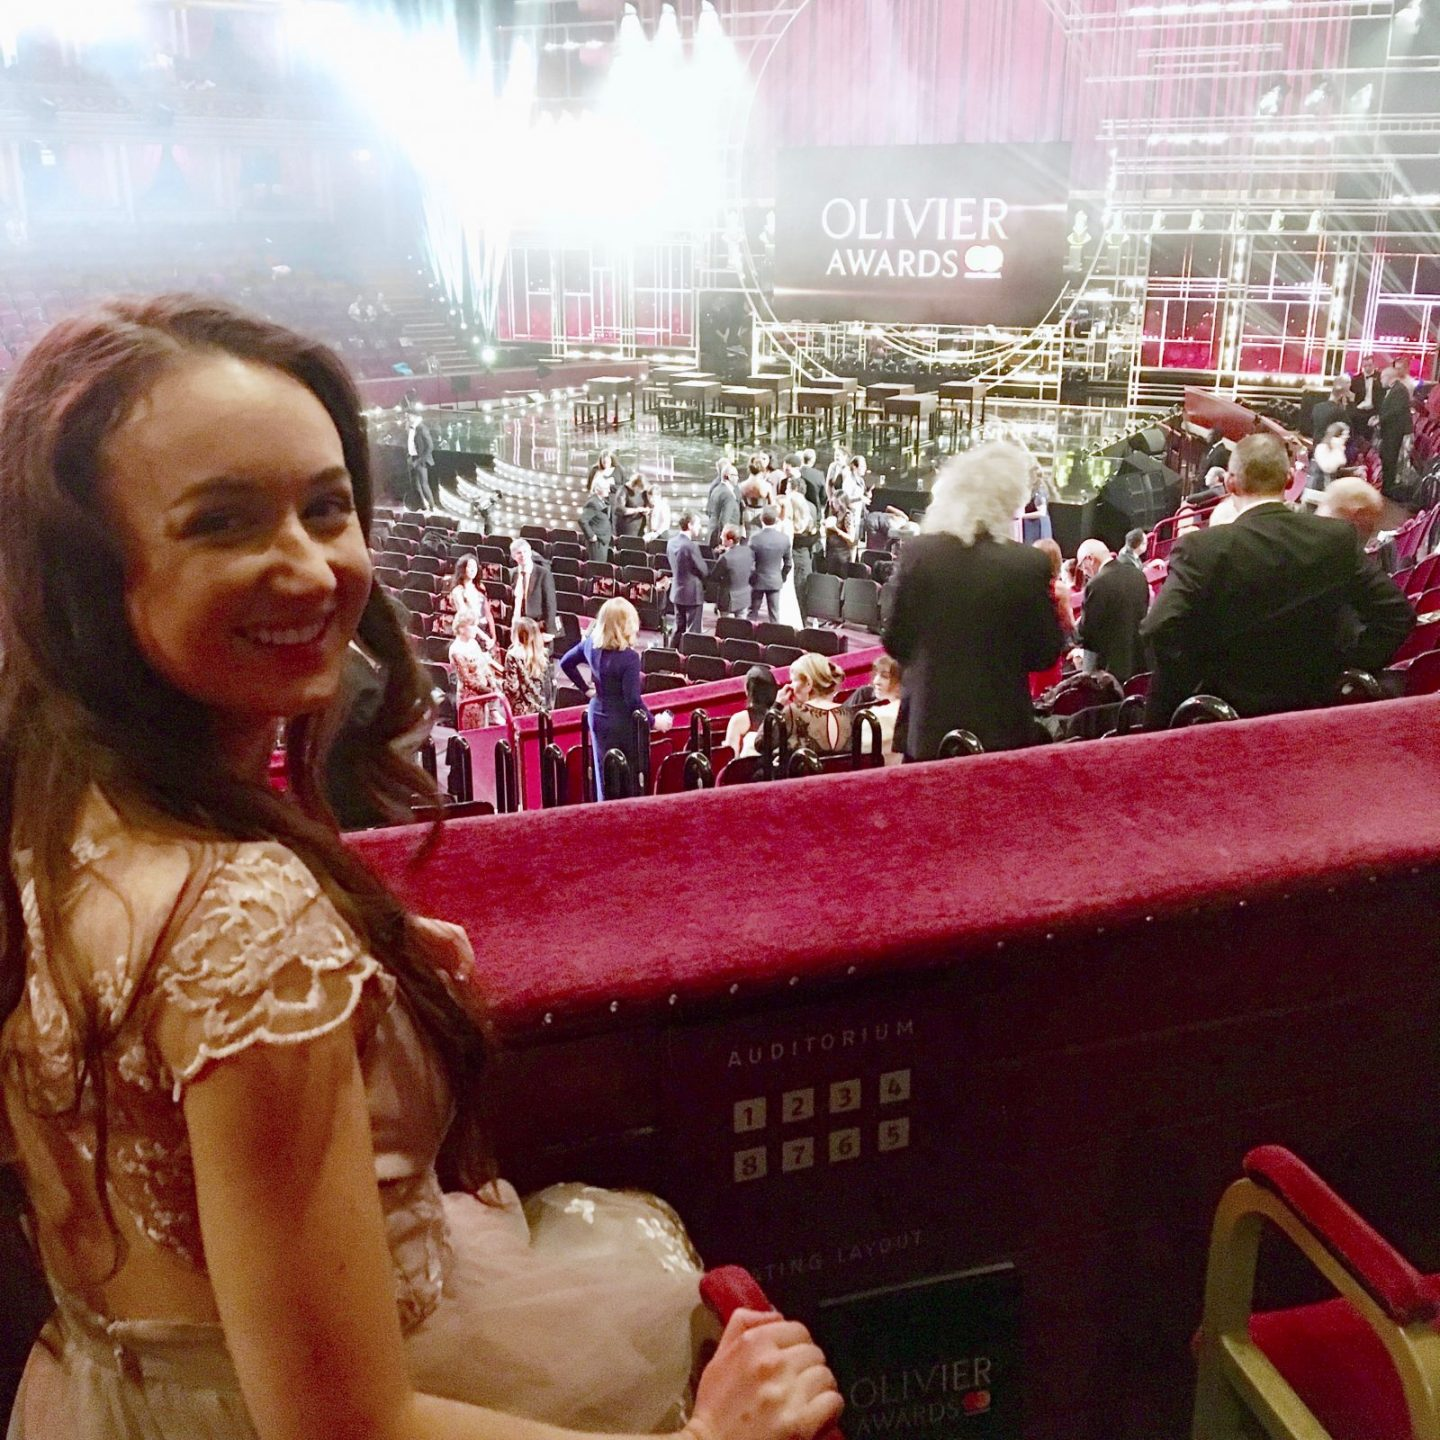 pippa sat in box at royal albert hall, looking back towards the camera. pippa is in a formal pink dress and olivier awards stage is visible in background